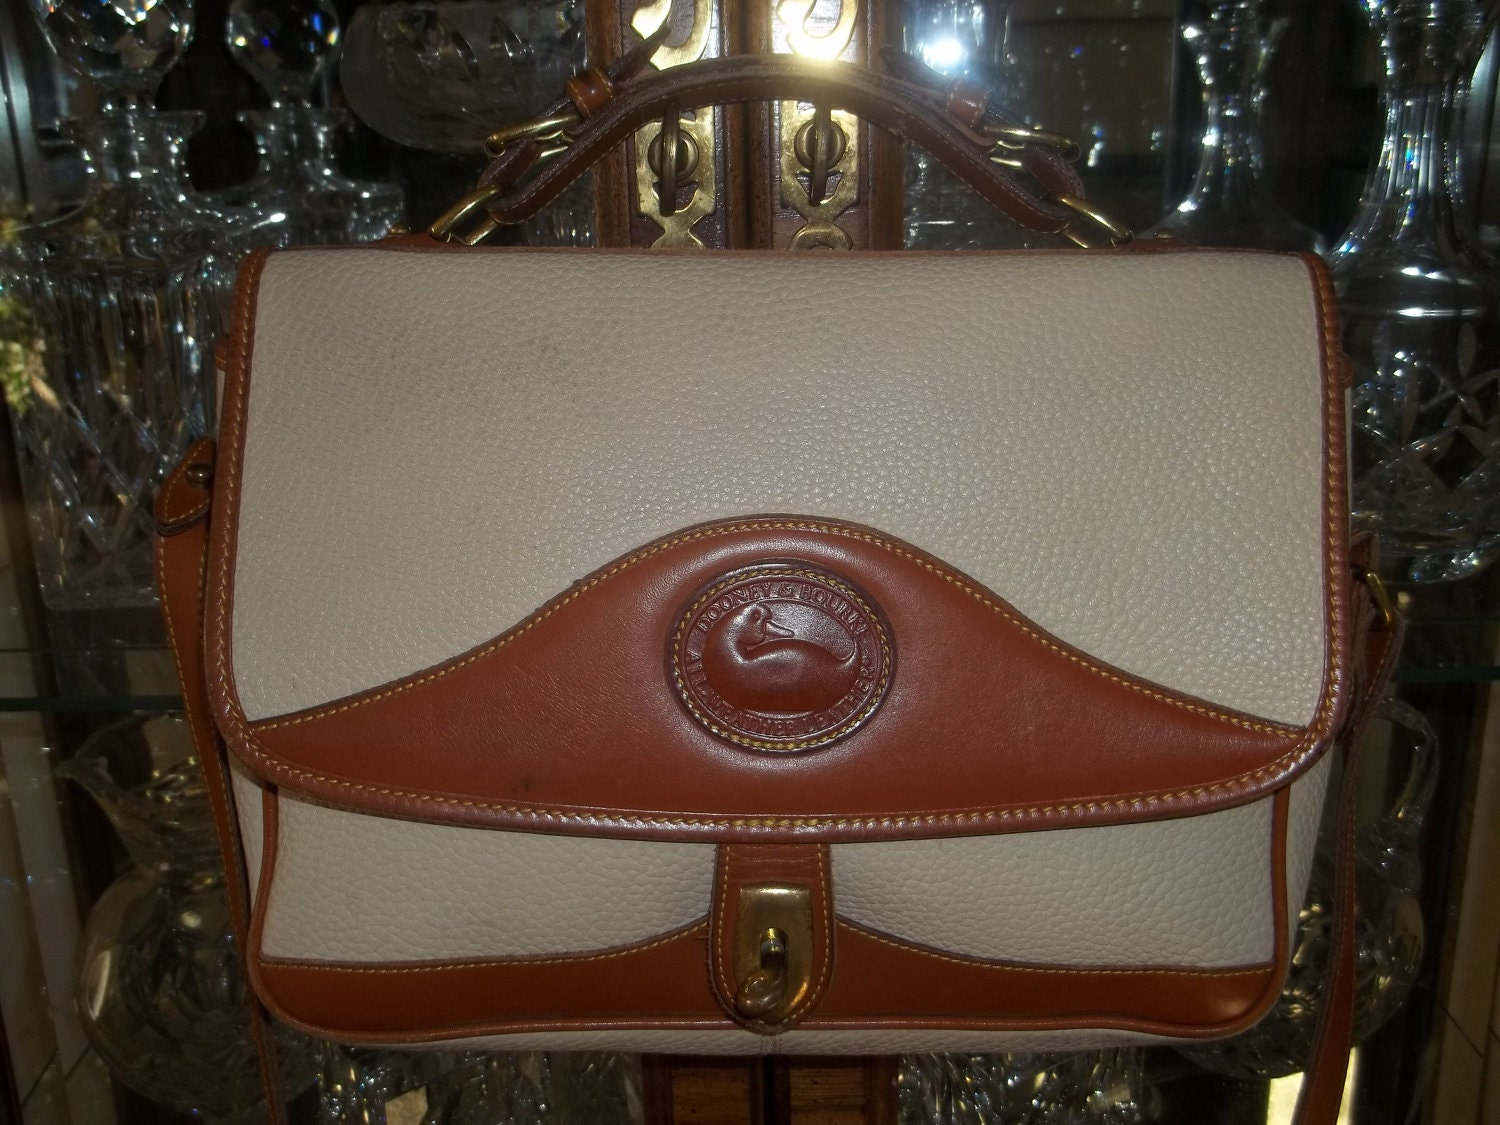 www.zappos.com Product Description: # The charming Dillen satchel from